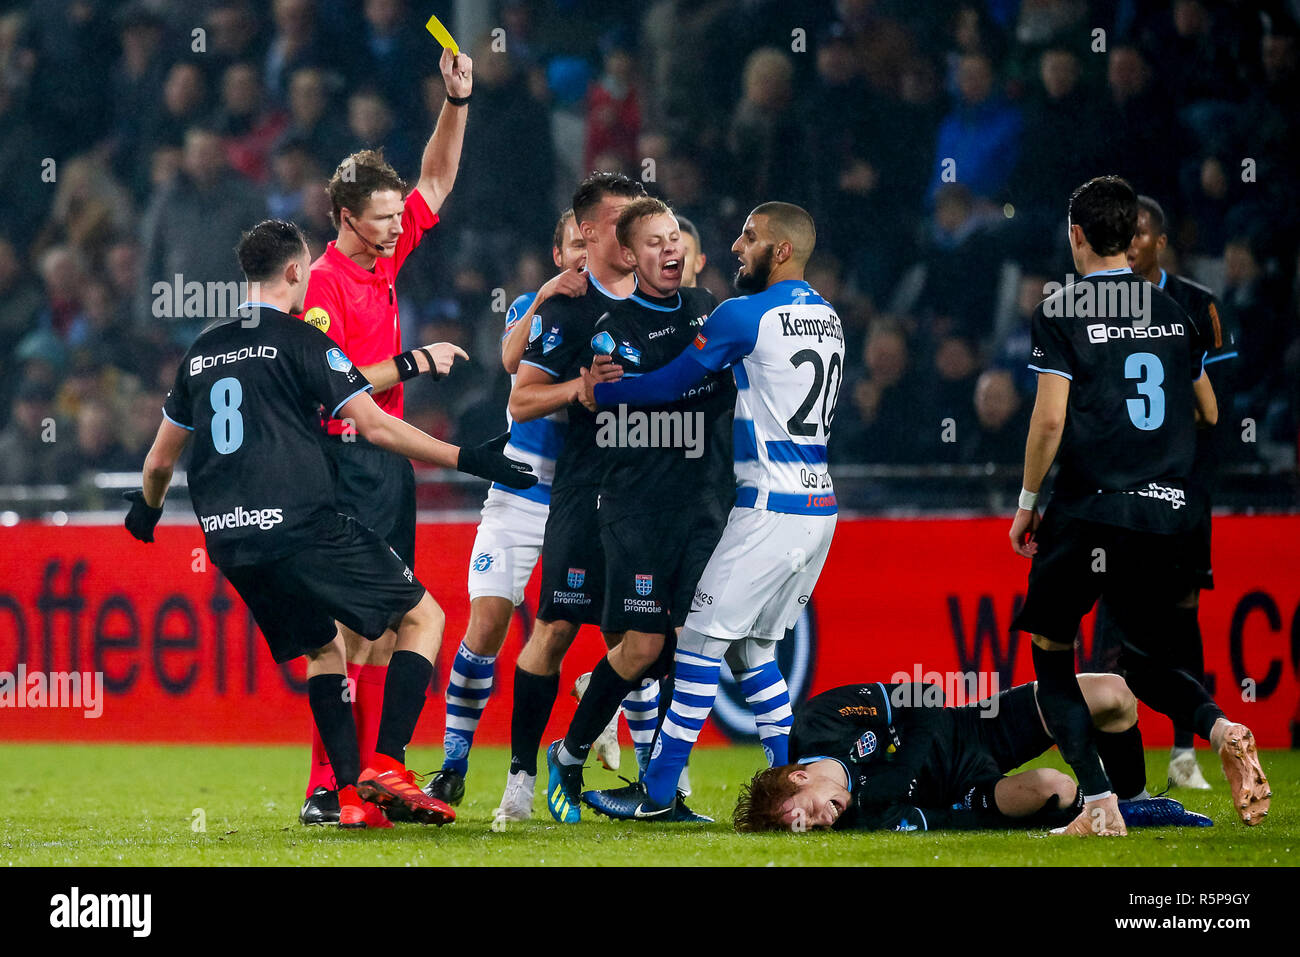 DOETINCHEM, De Graafschap - PEC Zwolle 0-2, football, Eredivisie, season 2018-2019, 01-12-2018, Stadium De Vijverberg, commotion on the field, referee Martin van den Kekrhof (2L) gives a yellow card to De Graafschap player Youssef El Jebli (M) - Stock Image